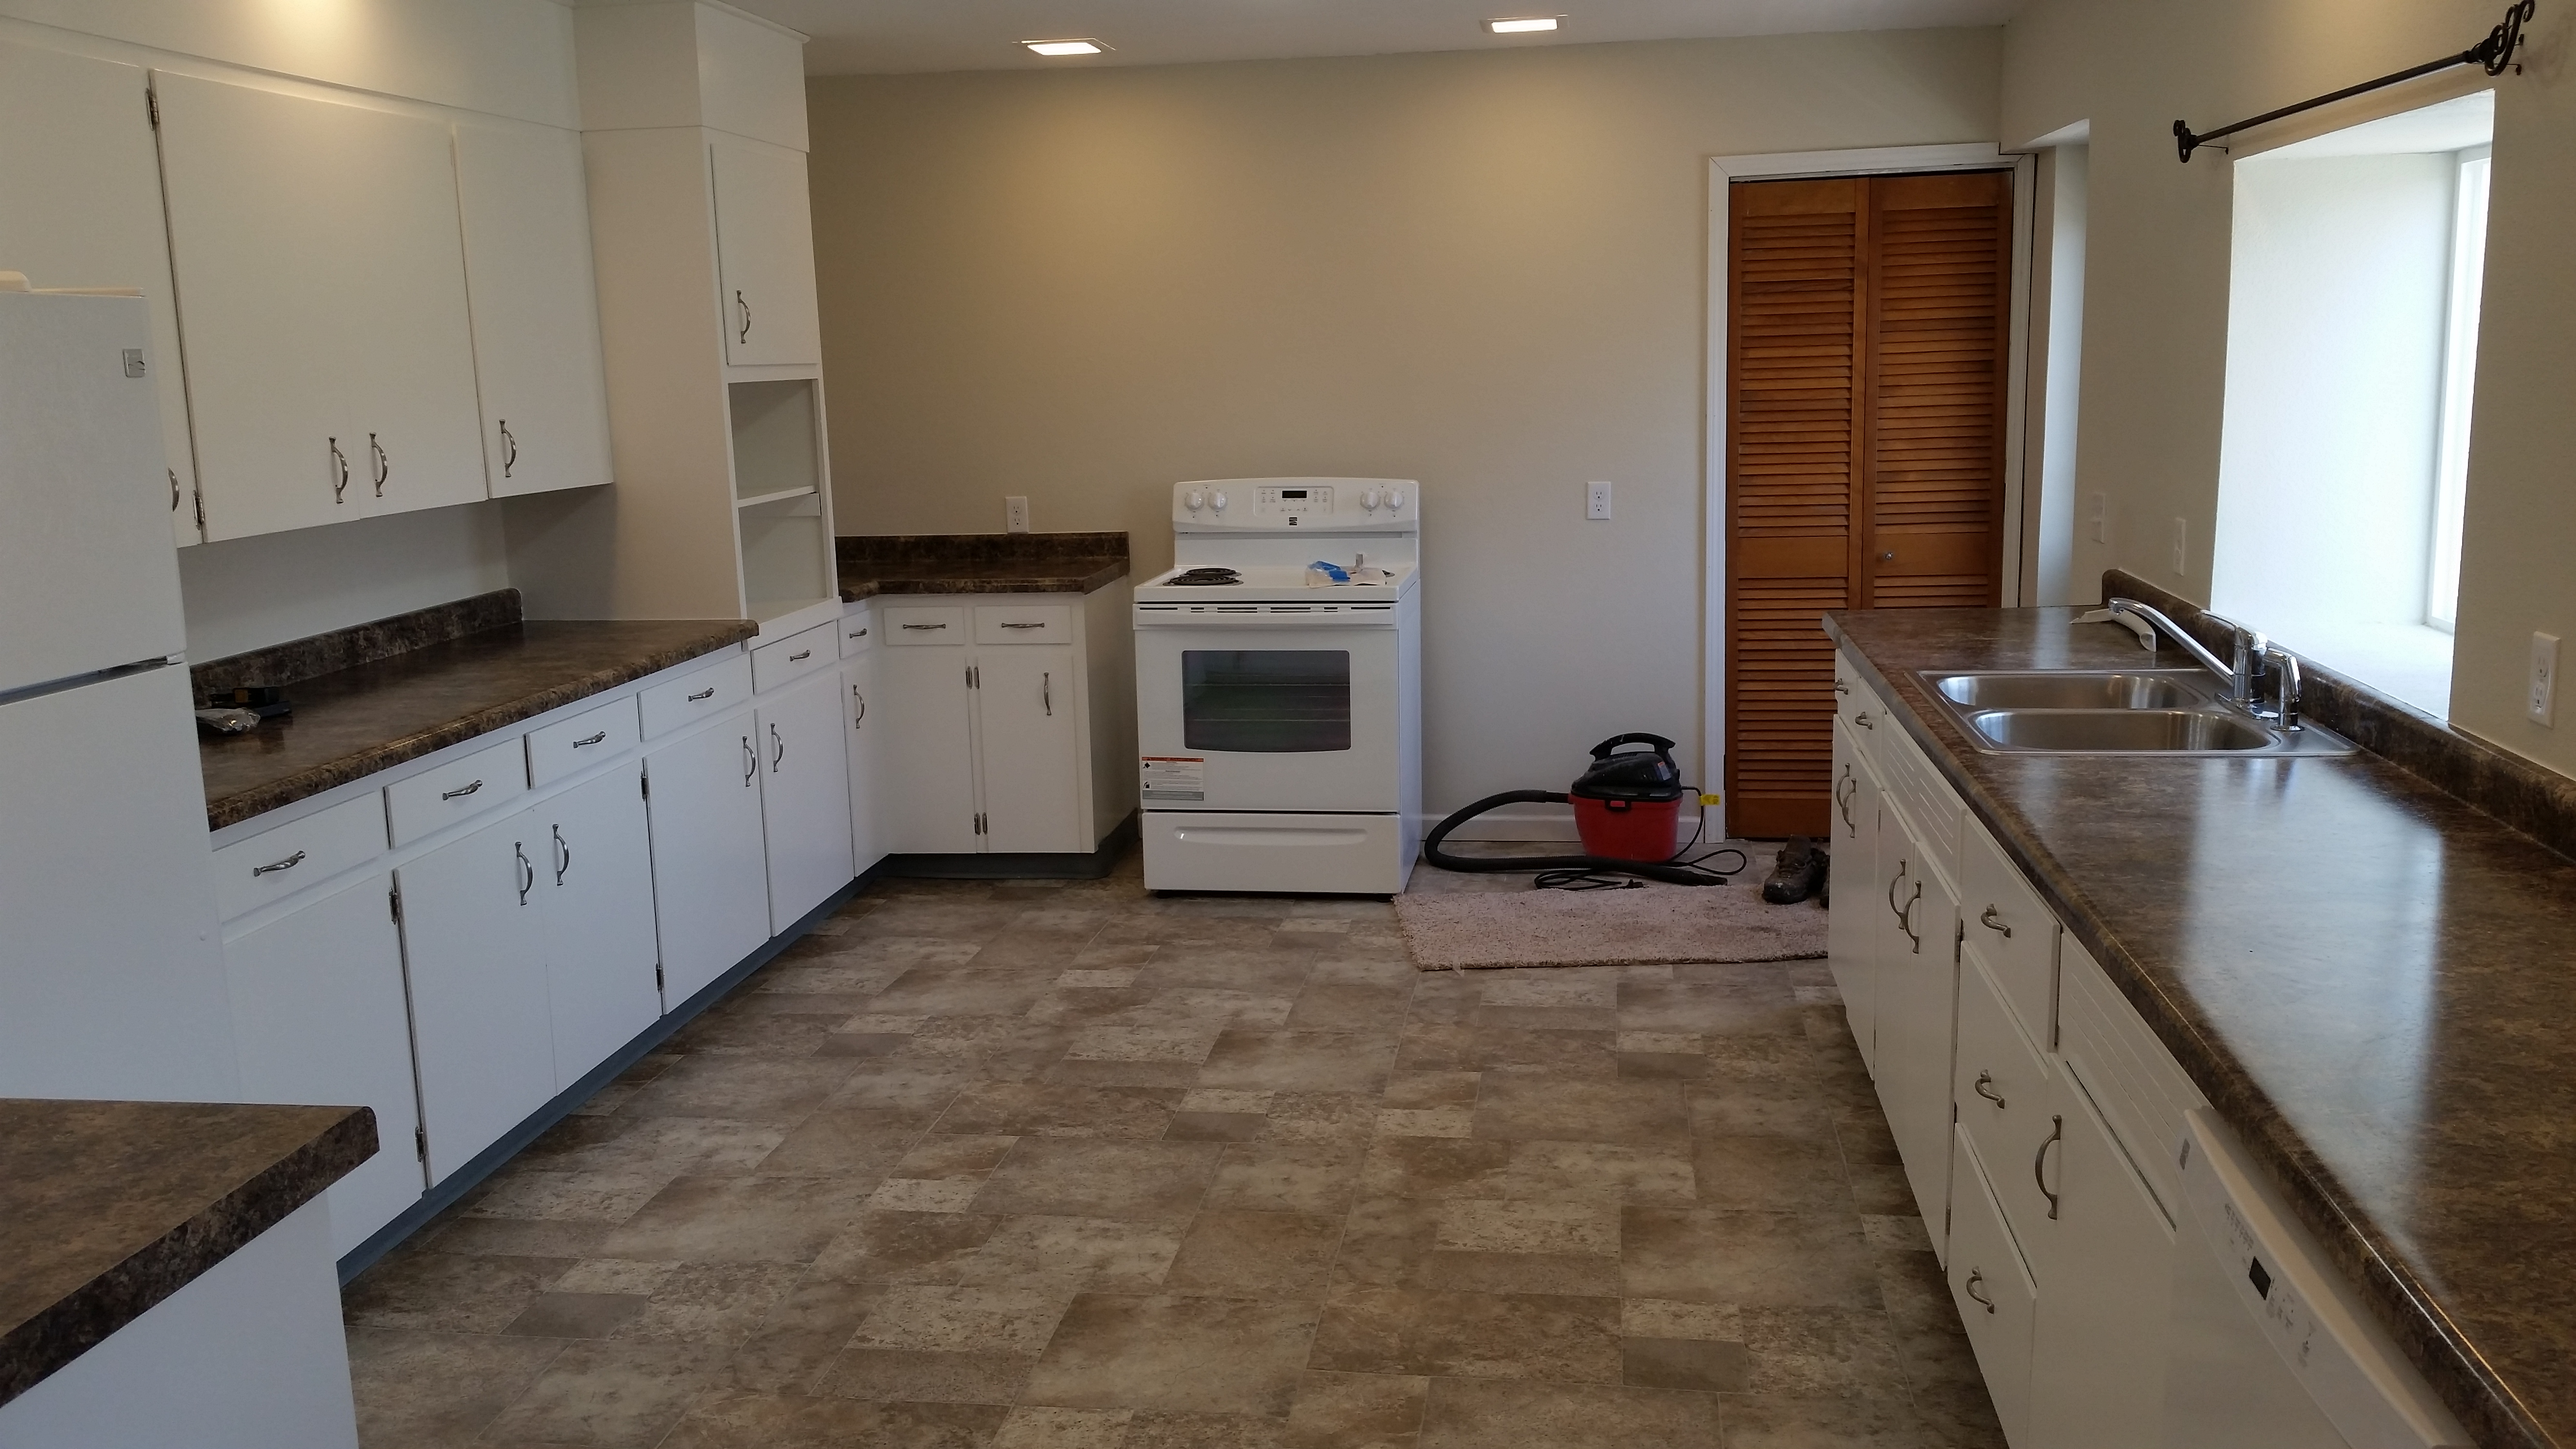 Chadron rentals rental houses apartments in chadron ne 524 lake st 3 bedroom 2 bath 3 bedroom apartments all utilities included